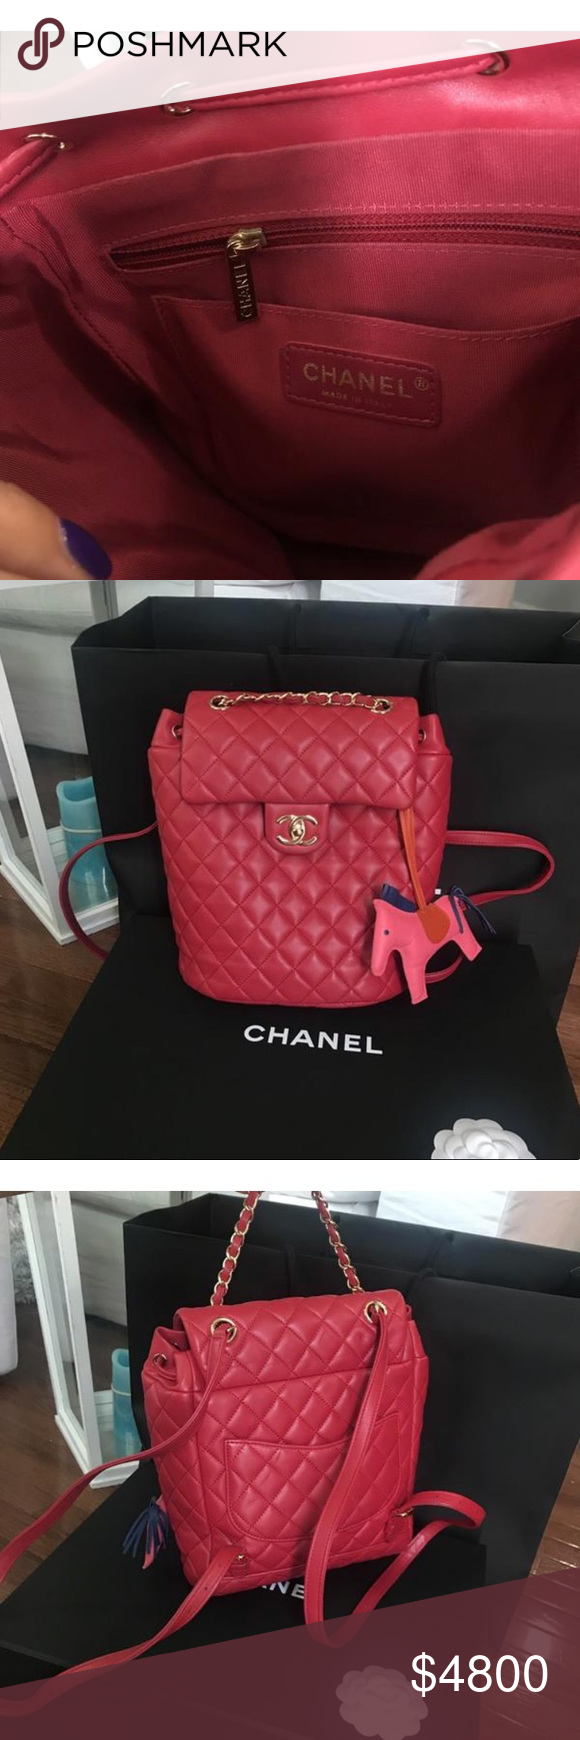 57fb84467da2 Chanel quilted Lambskin Urban spirit backpack Sold out everywhere. CHANEL  Lambskin Quilted Small Urban Spirit